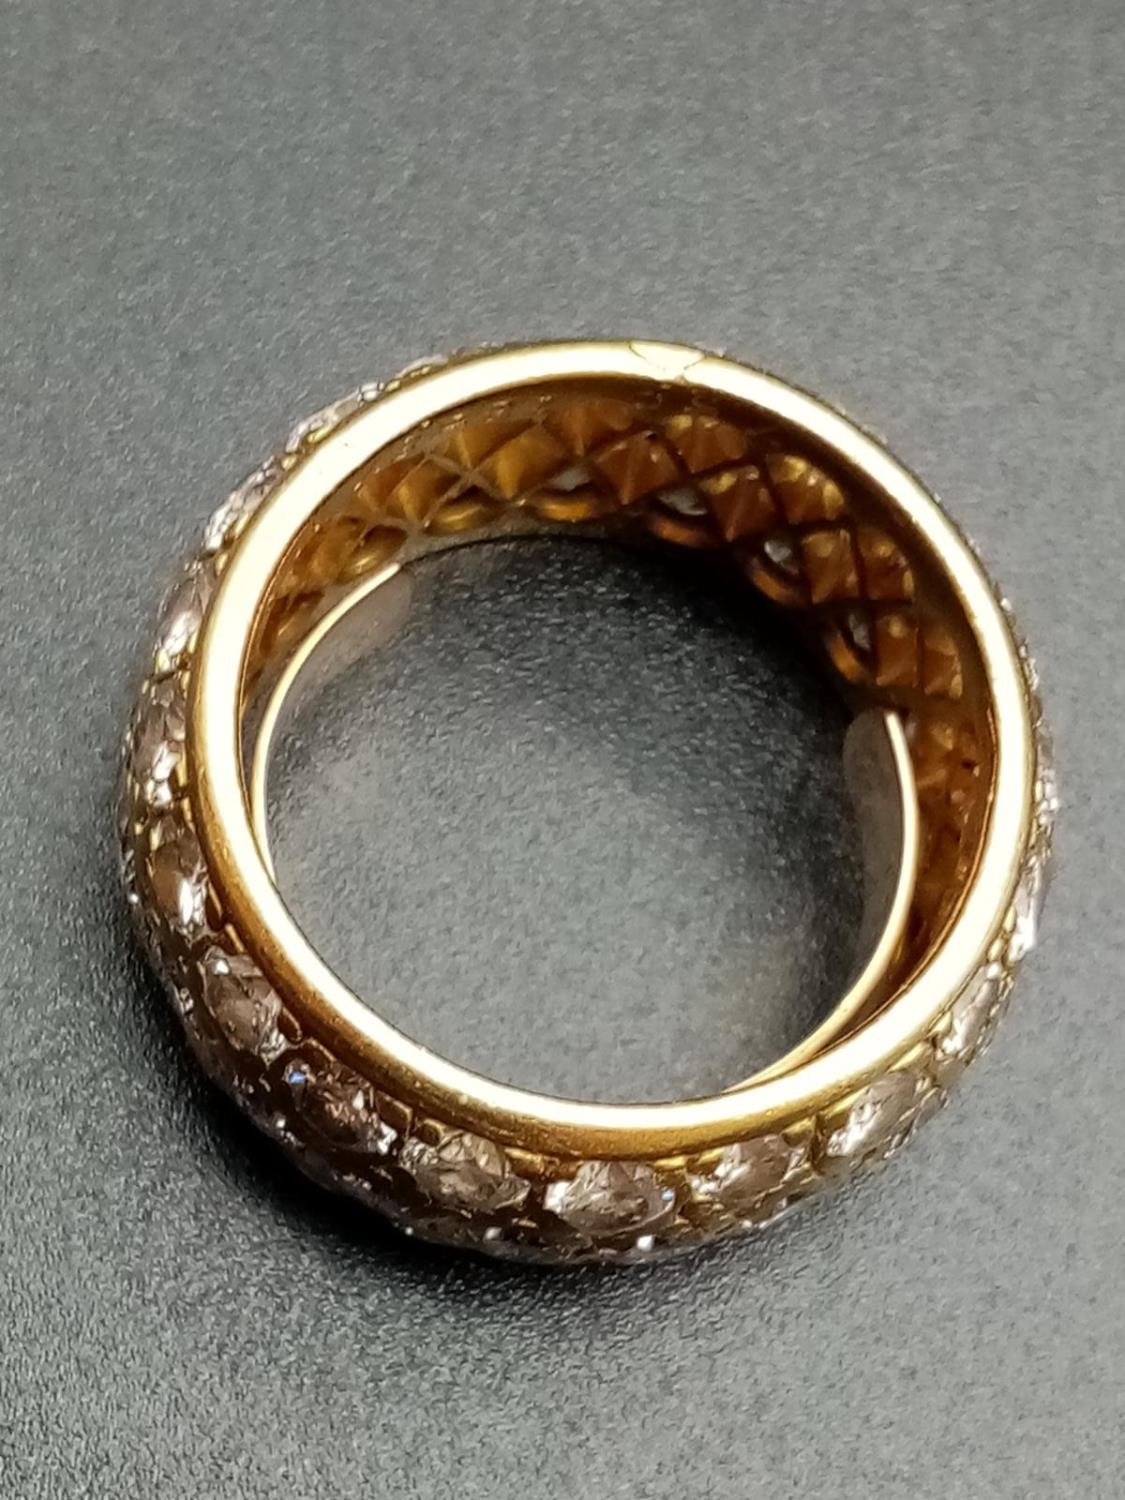 AN 18K ROSE GOLD BAND RING ENCRUSTED WITH DIAMOND STONES (APPROX 4CT) 10.3gms size k/l - Image 2 of 7